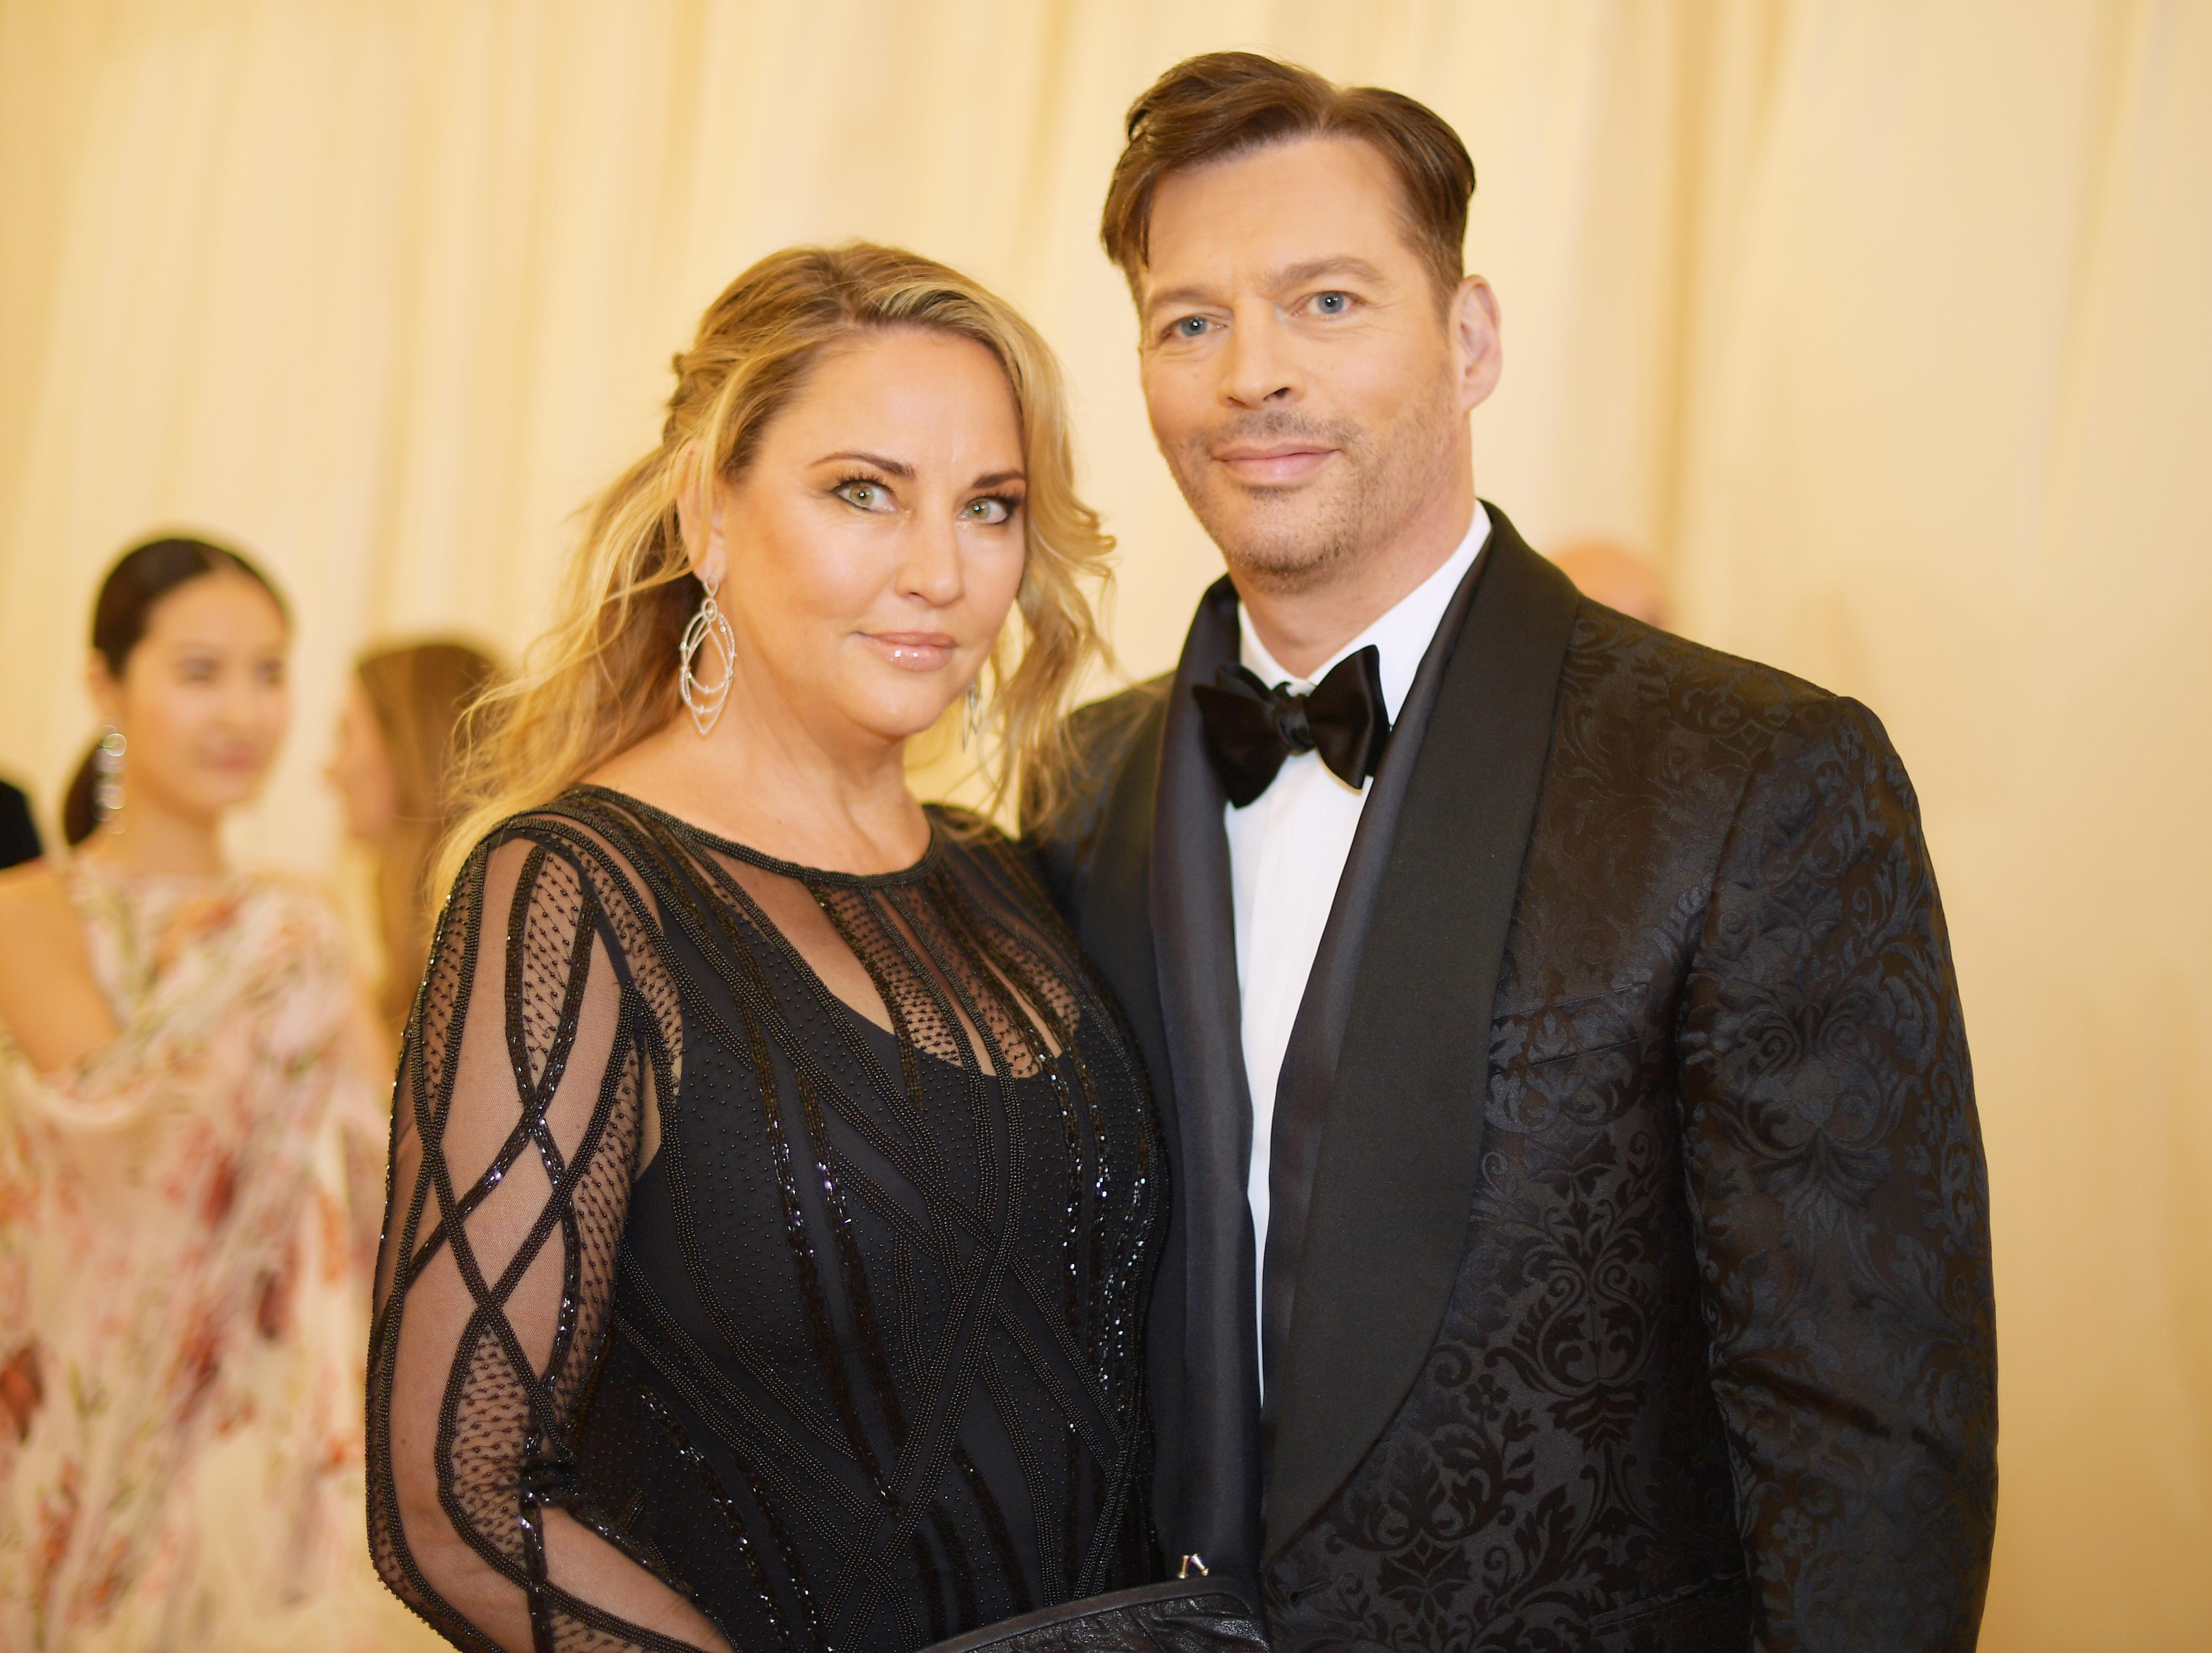 Harry Connick Jr. recalls Frank Sinatra acting 'completely inappropriate' with wife Jill Goodacre